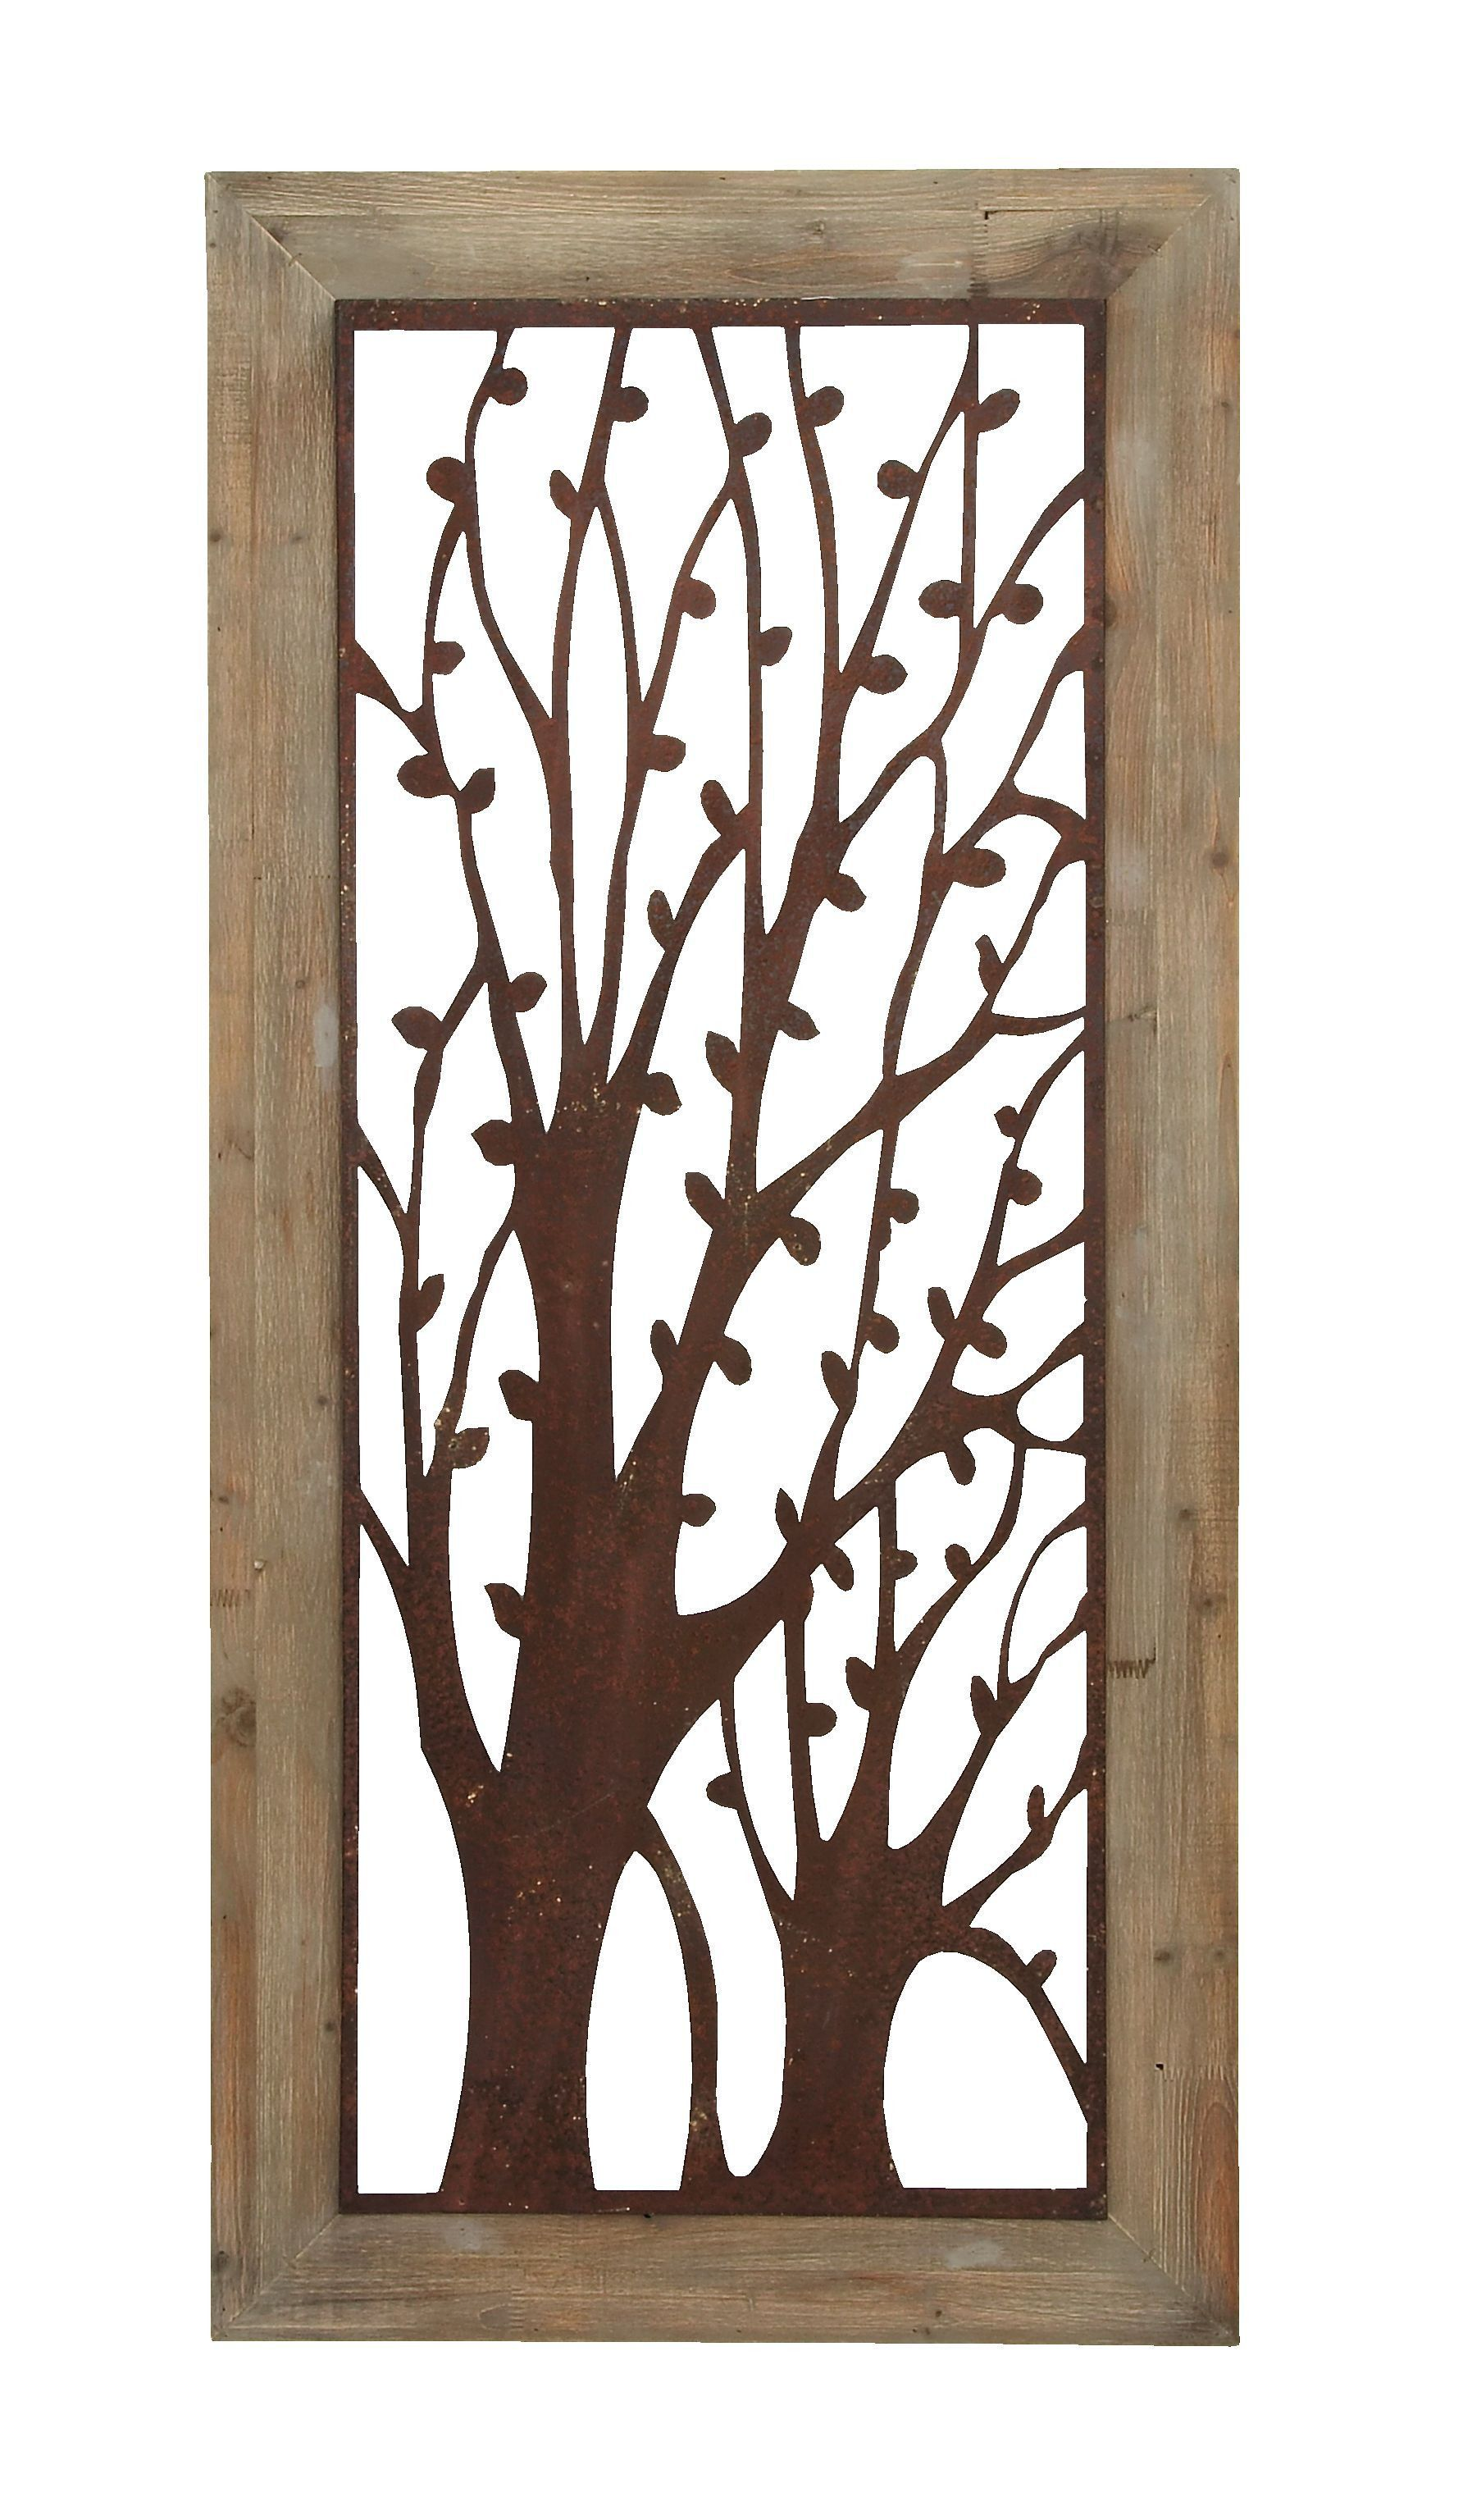 Wood And Metal Wall Plaque Enchanting Wall Plaque With Garden Trees  Backyard Gardening